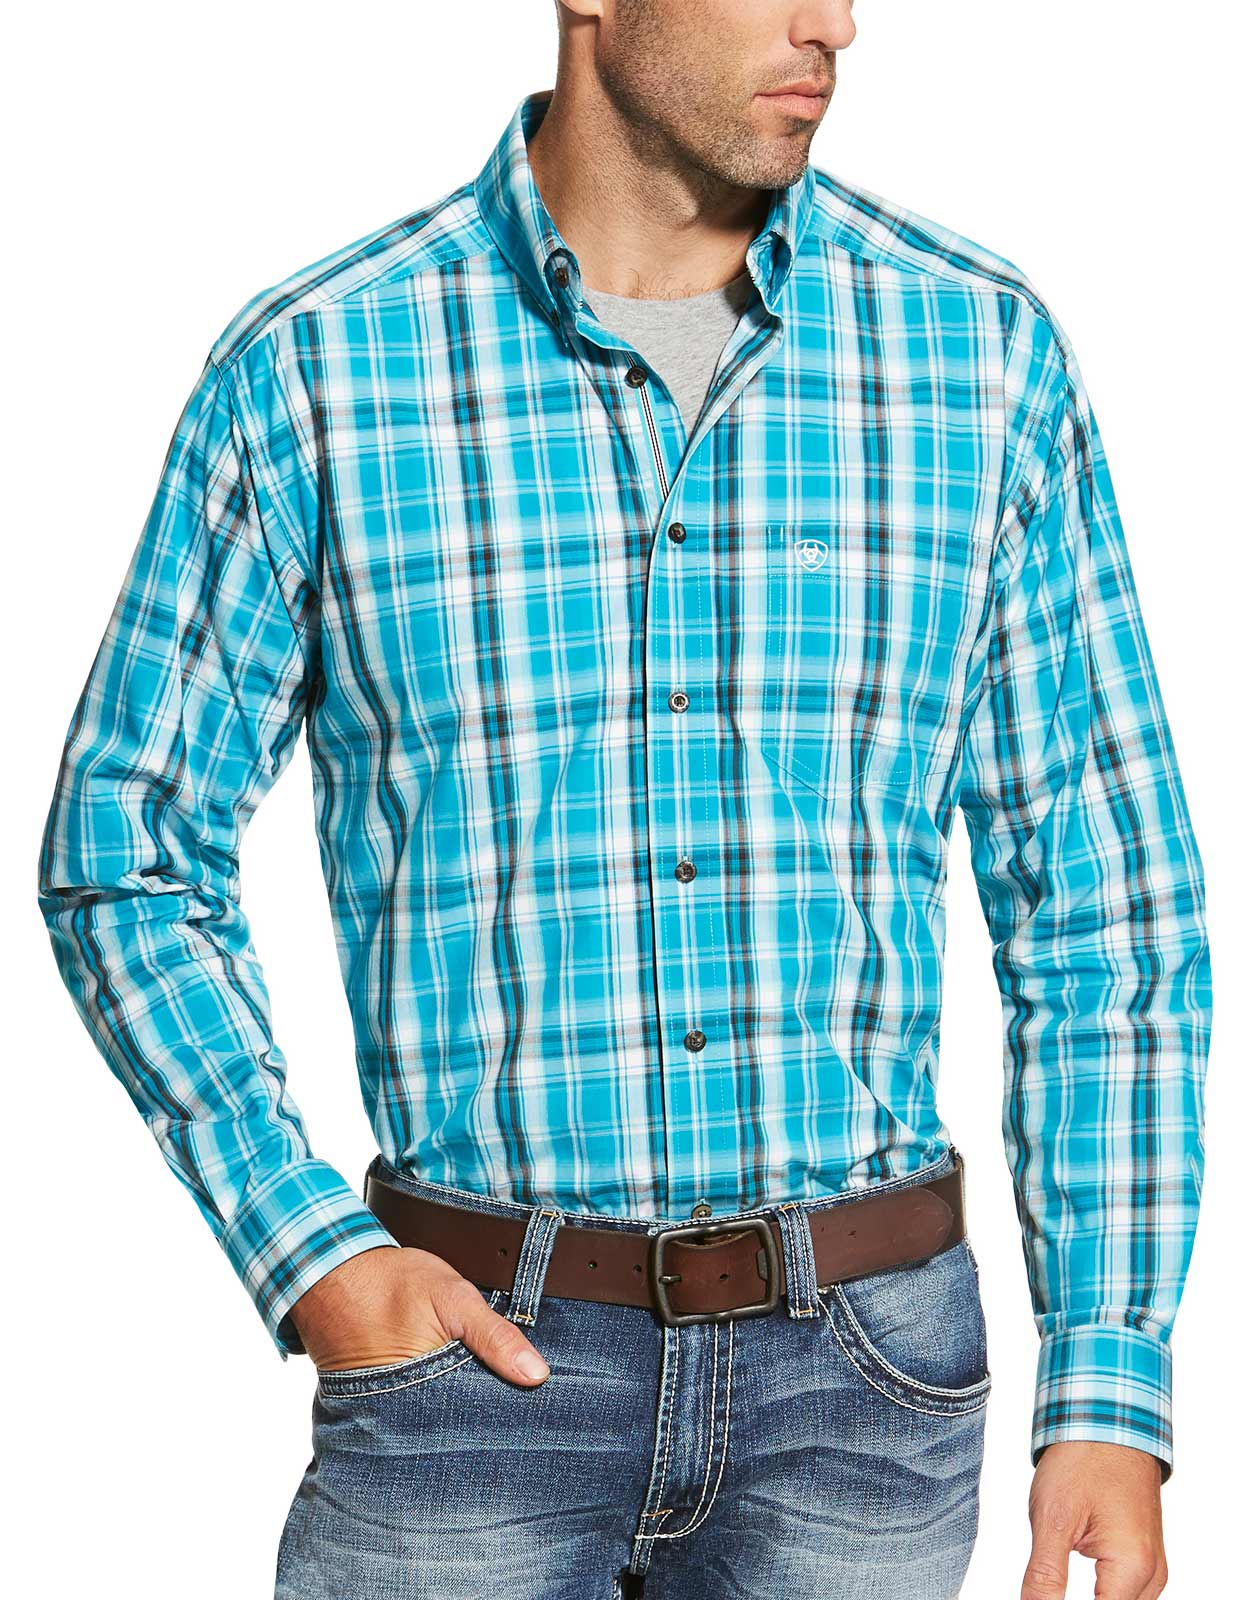 Ariat Men's Long Sleeve Plaid Button Down Shirt - Blue